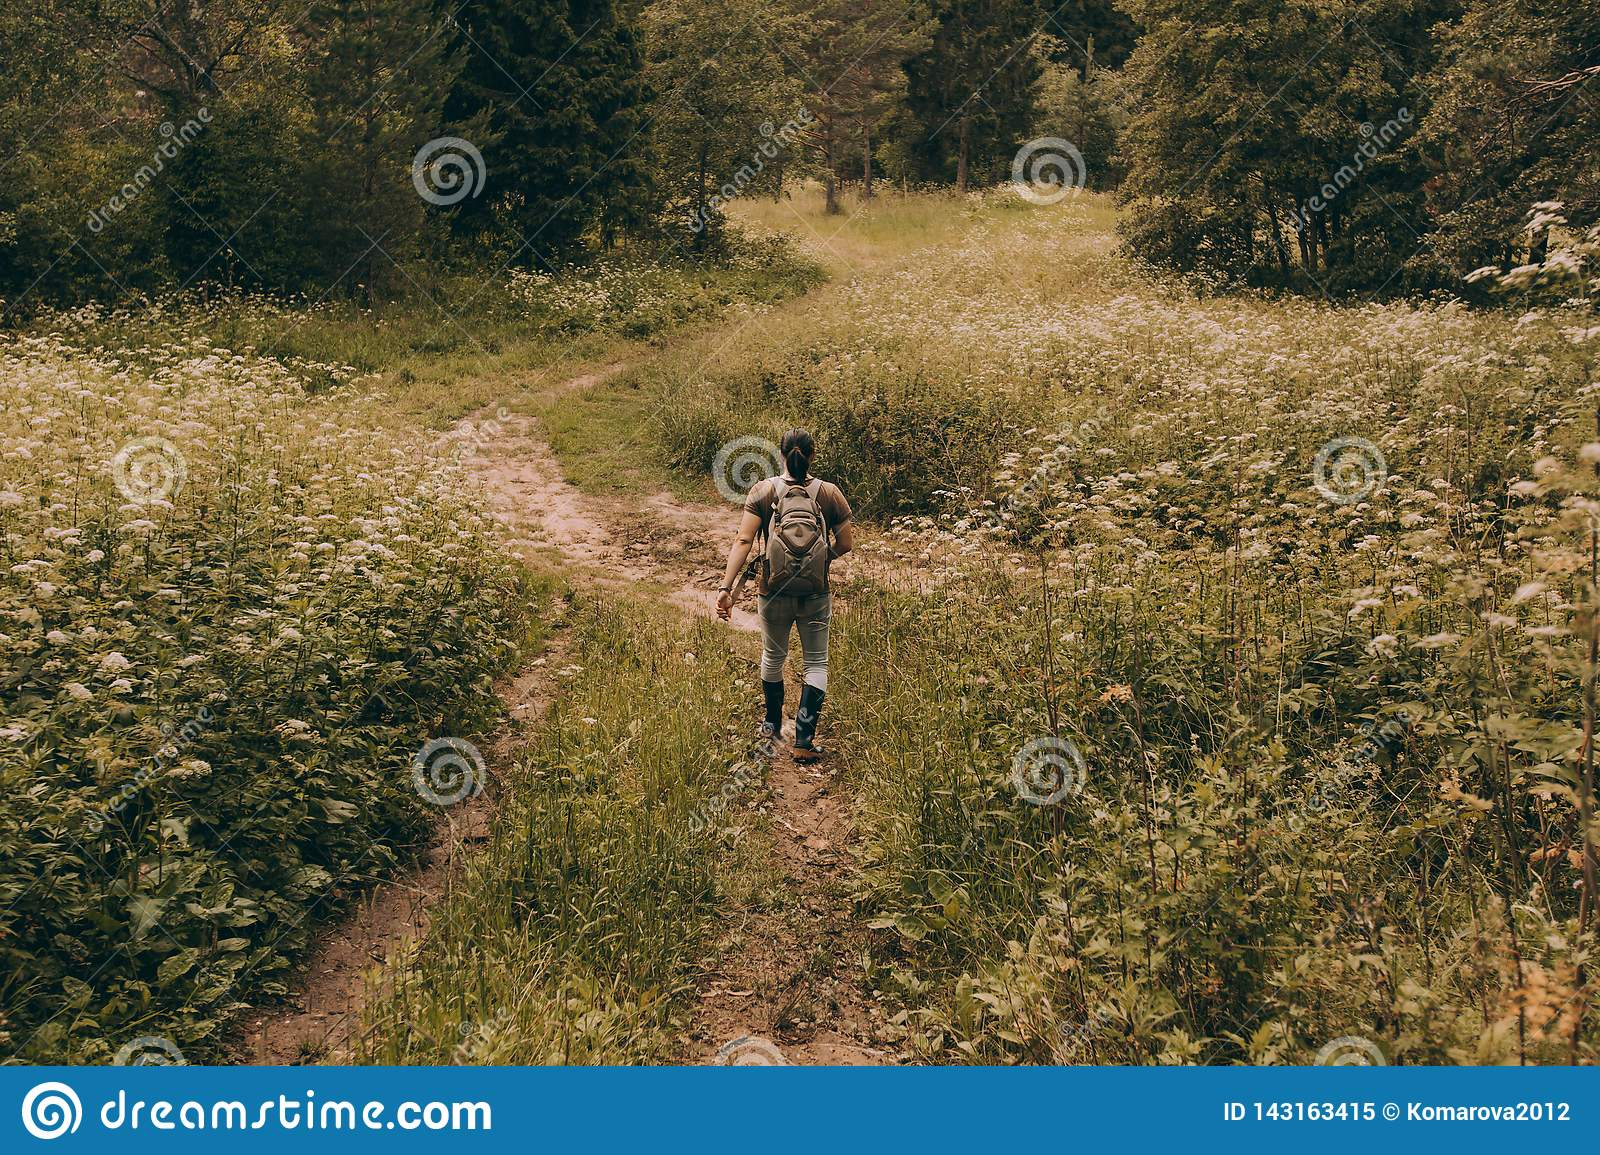 A man in rubber boots walks back through a flower meadow